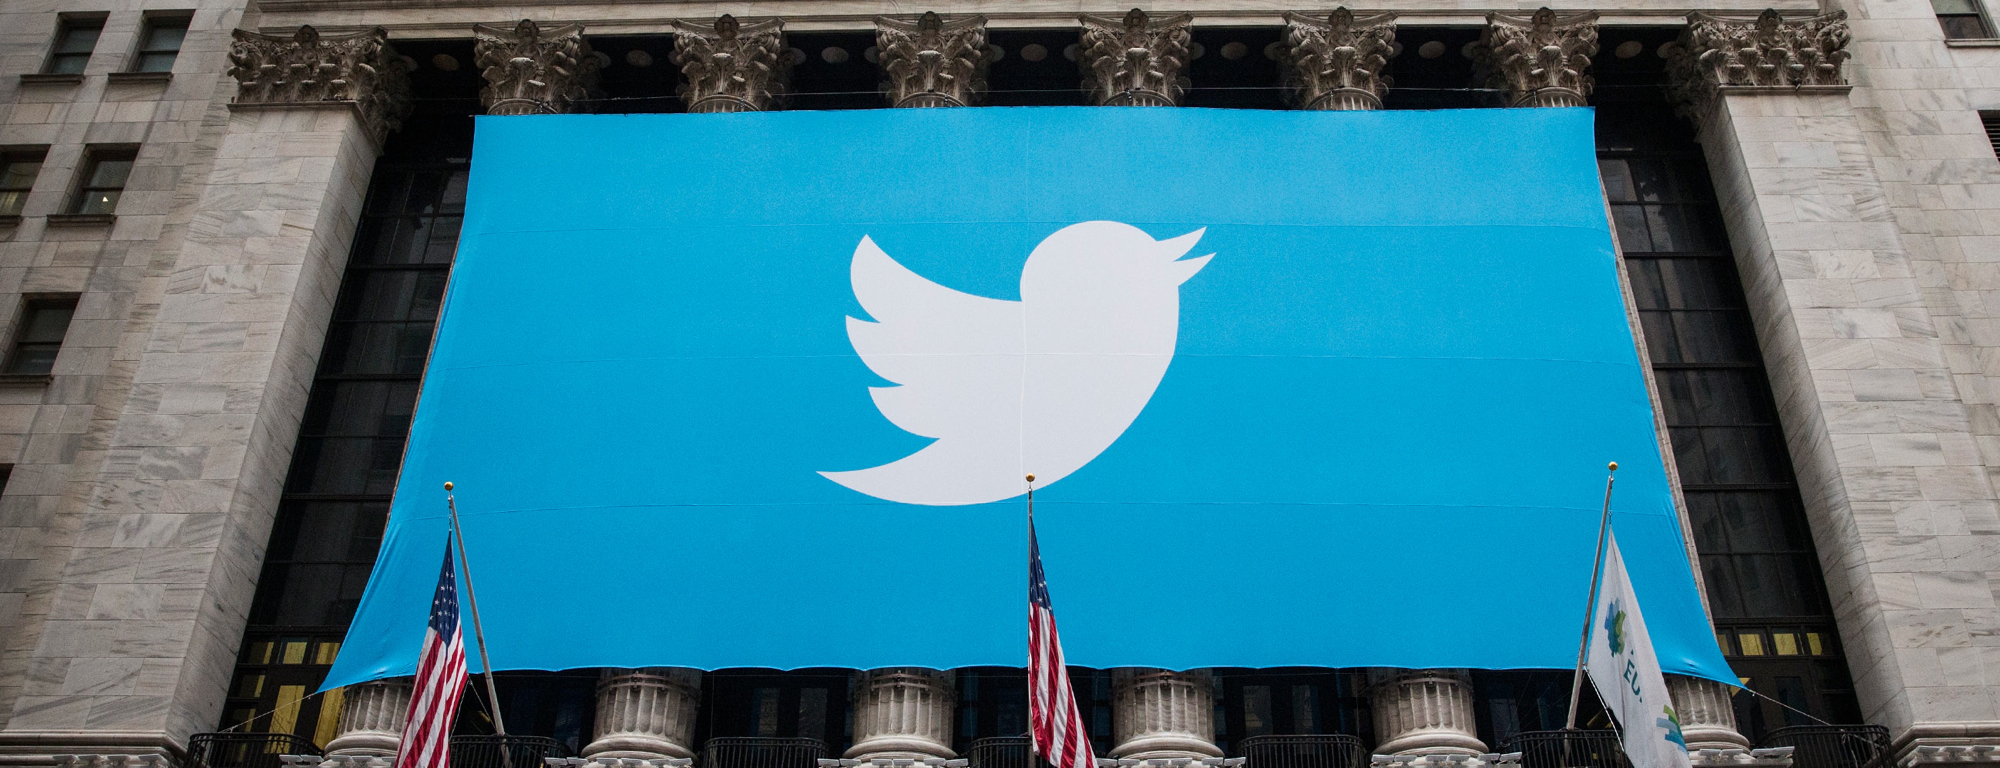 Twitter Wants A Better Mix Of Public Tweets, Private Messaging